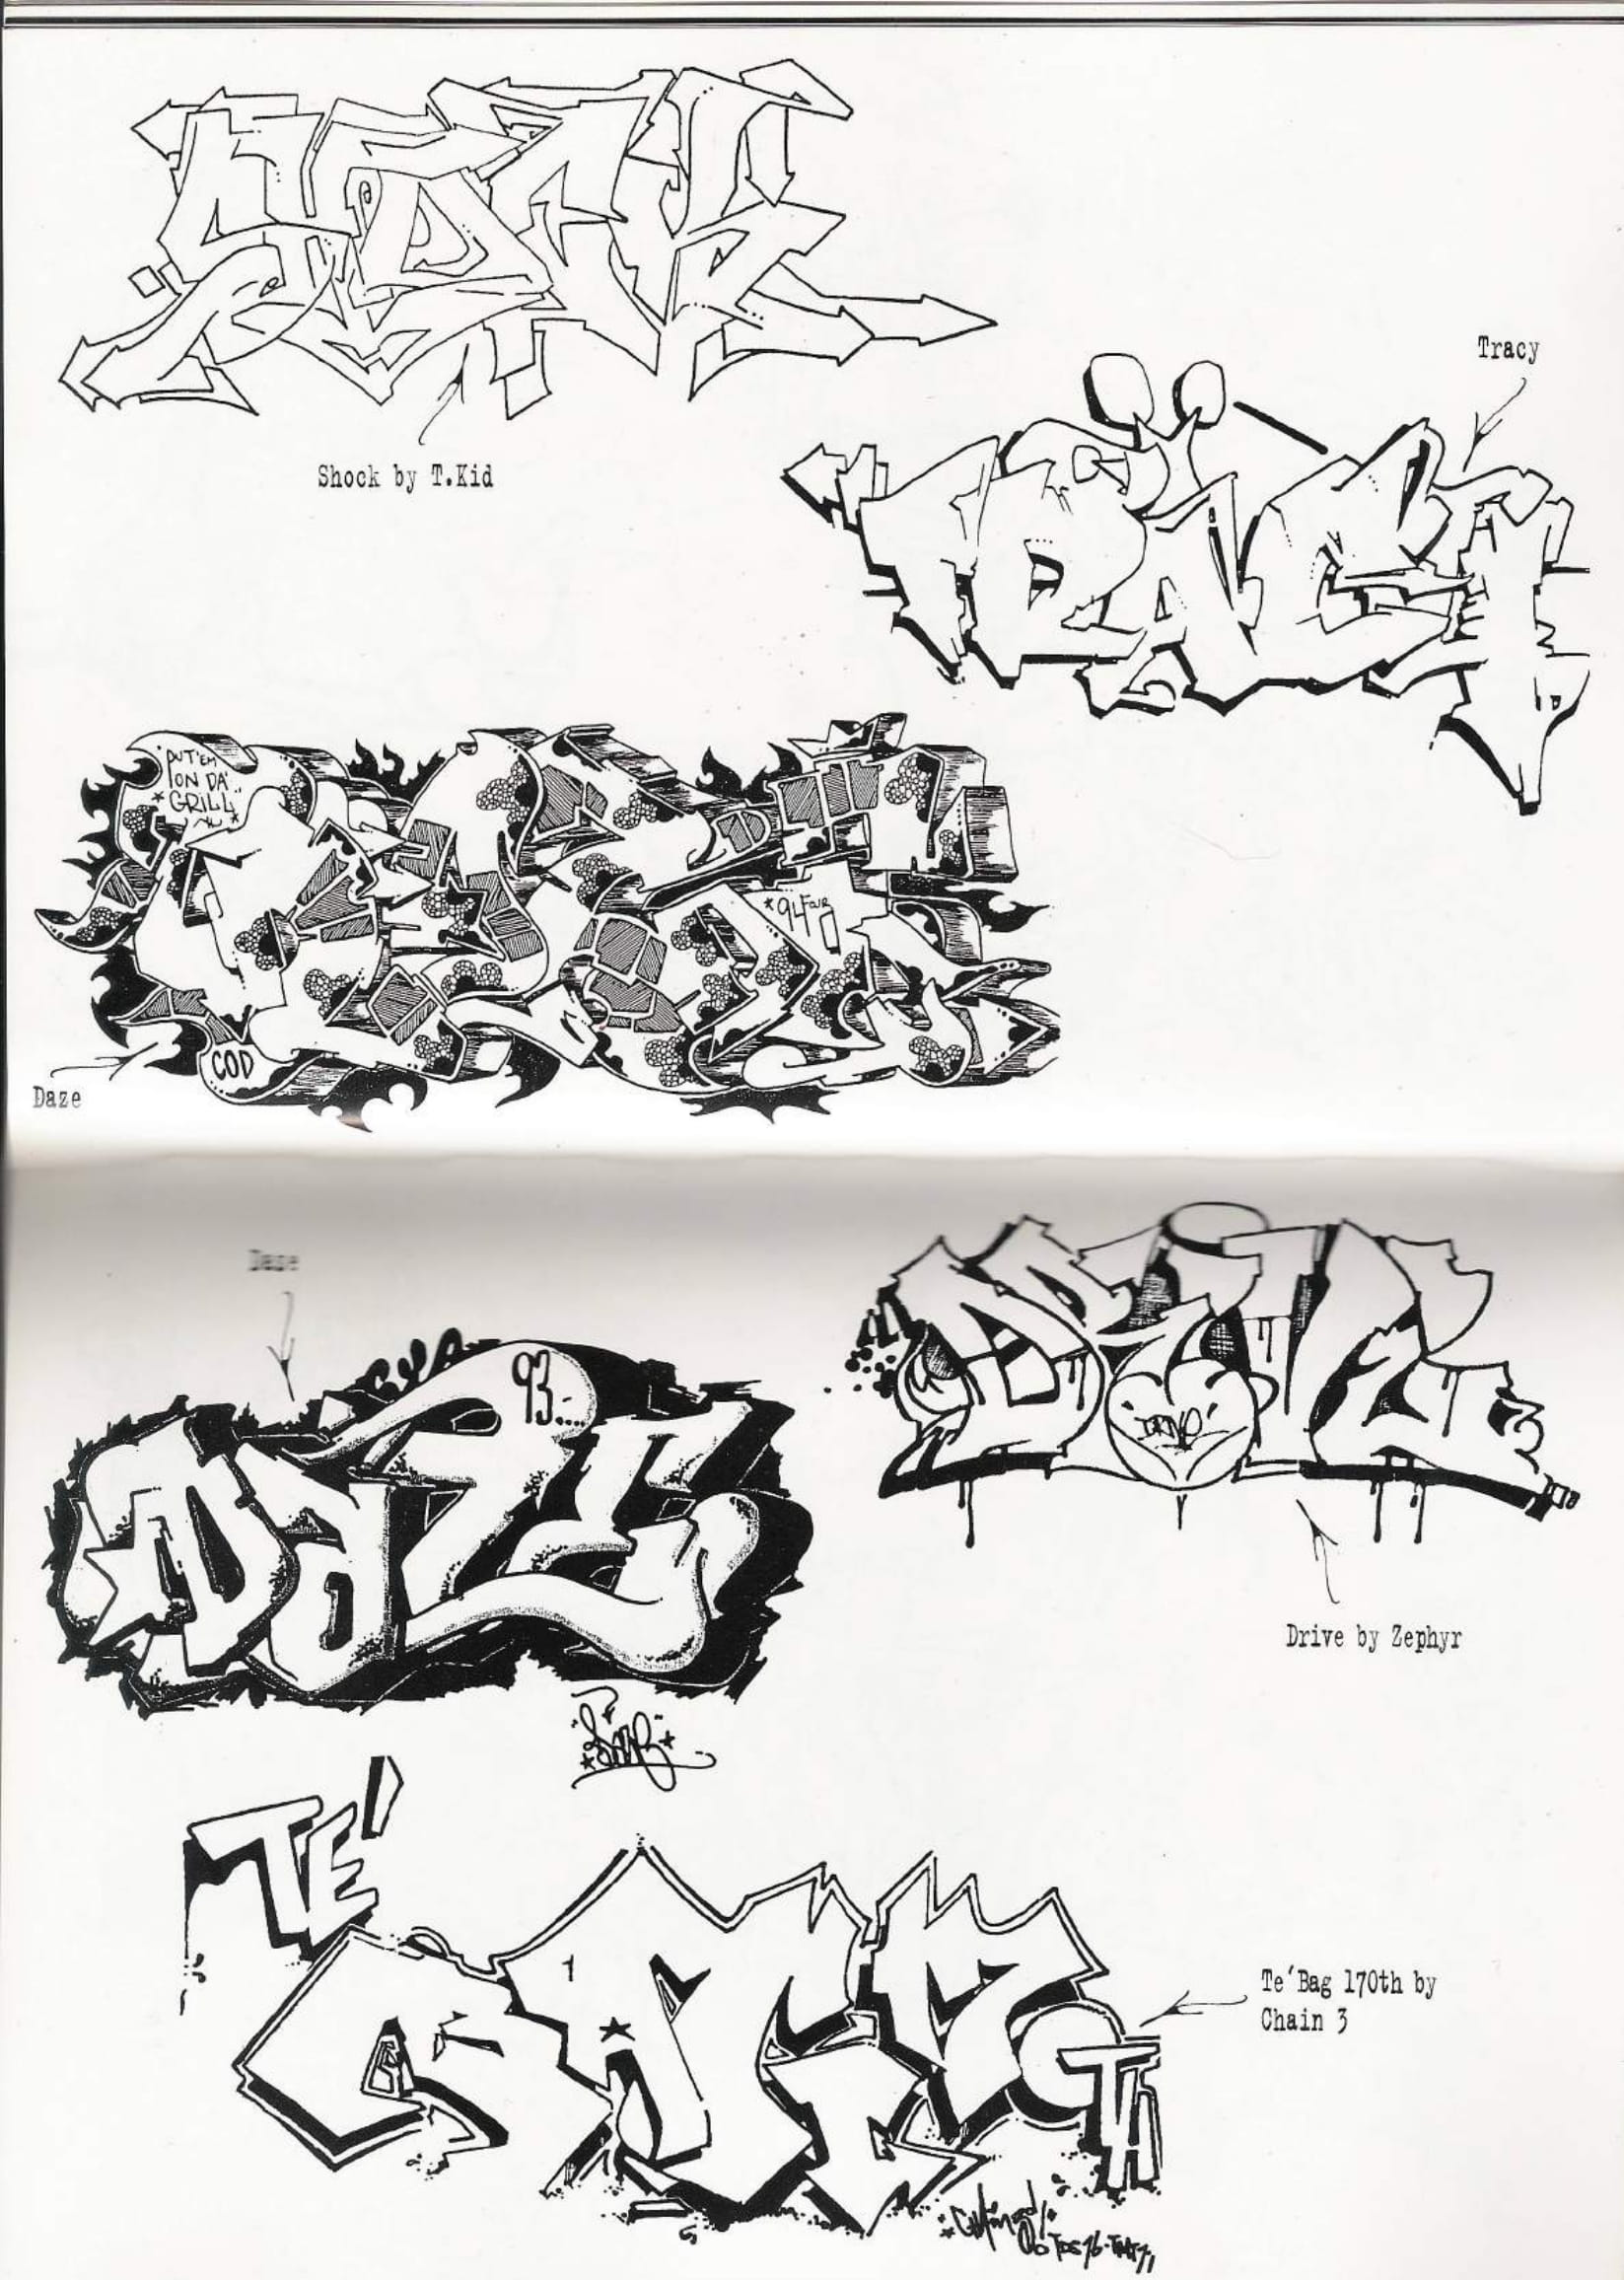 Backjumps.-.Sketchbook-AEROHOLICS-compressed-13.jpg